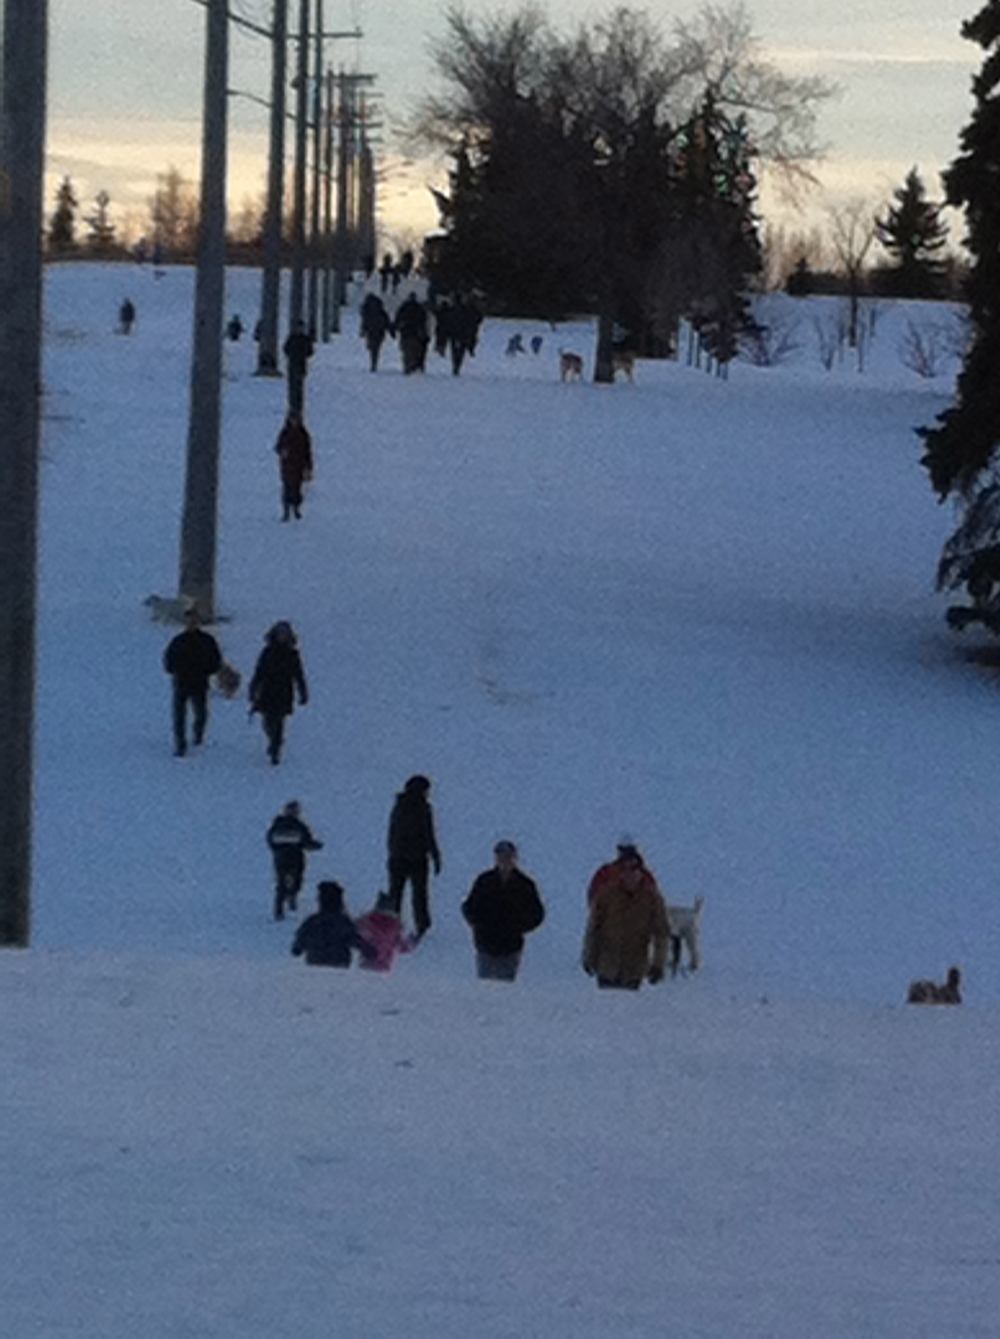 A parade of dog walker in January, in River Park, in Altadore is a common sight.